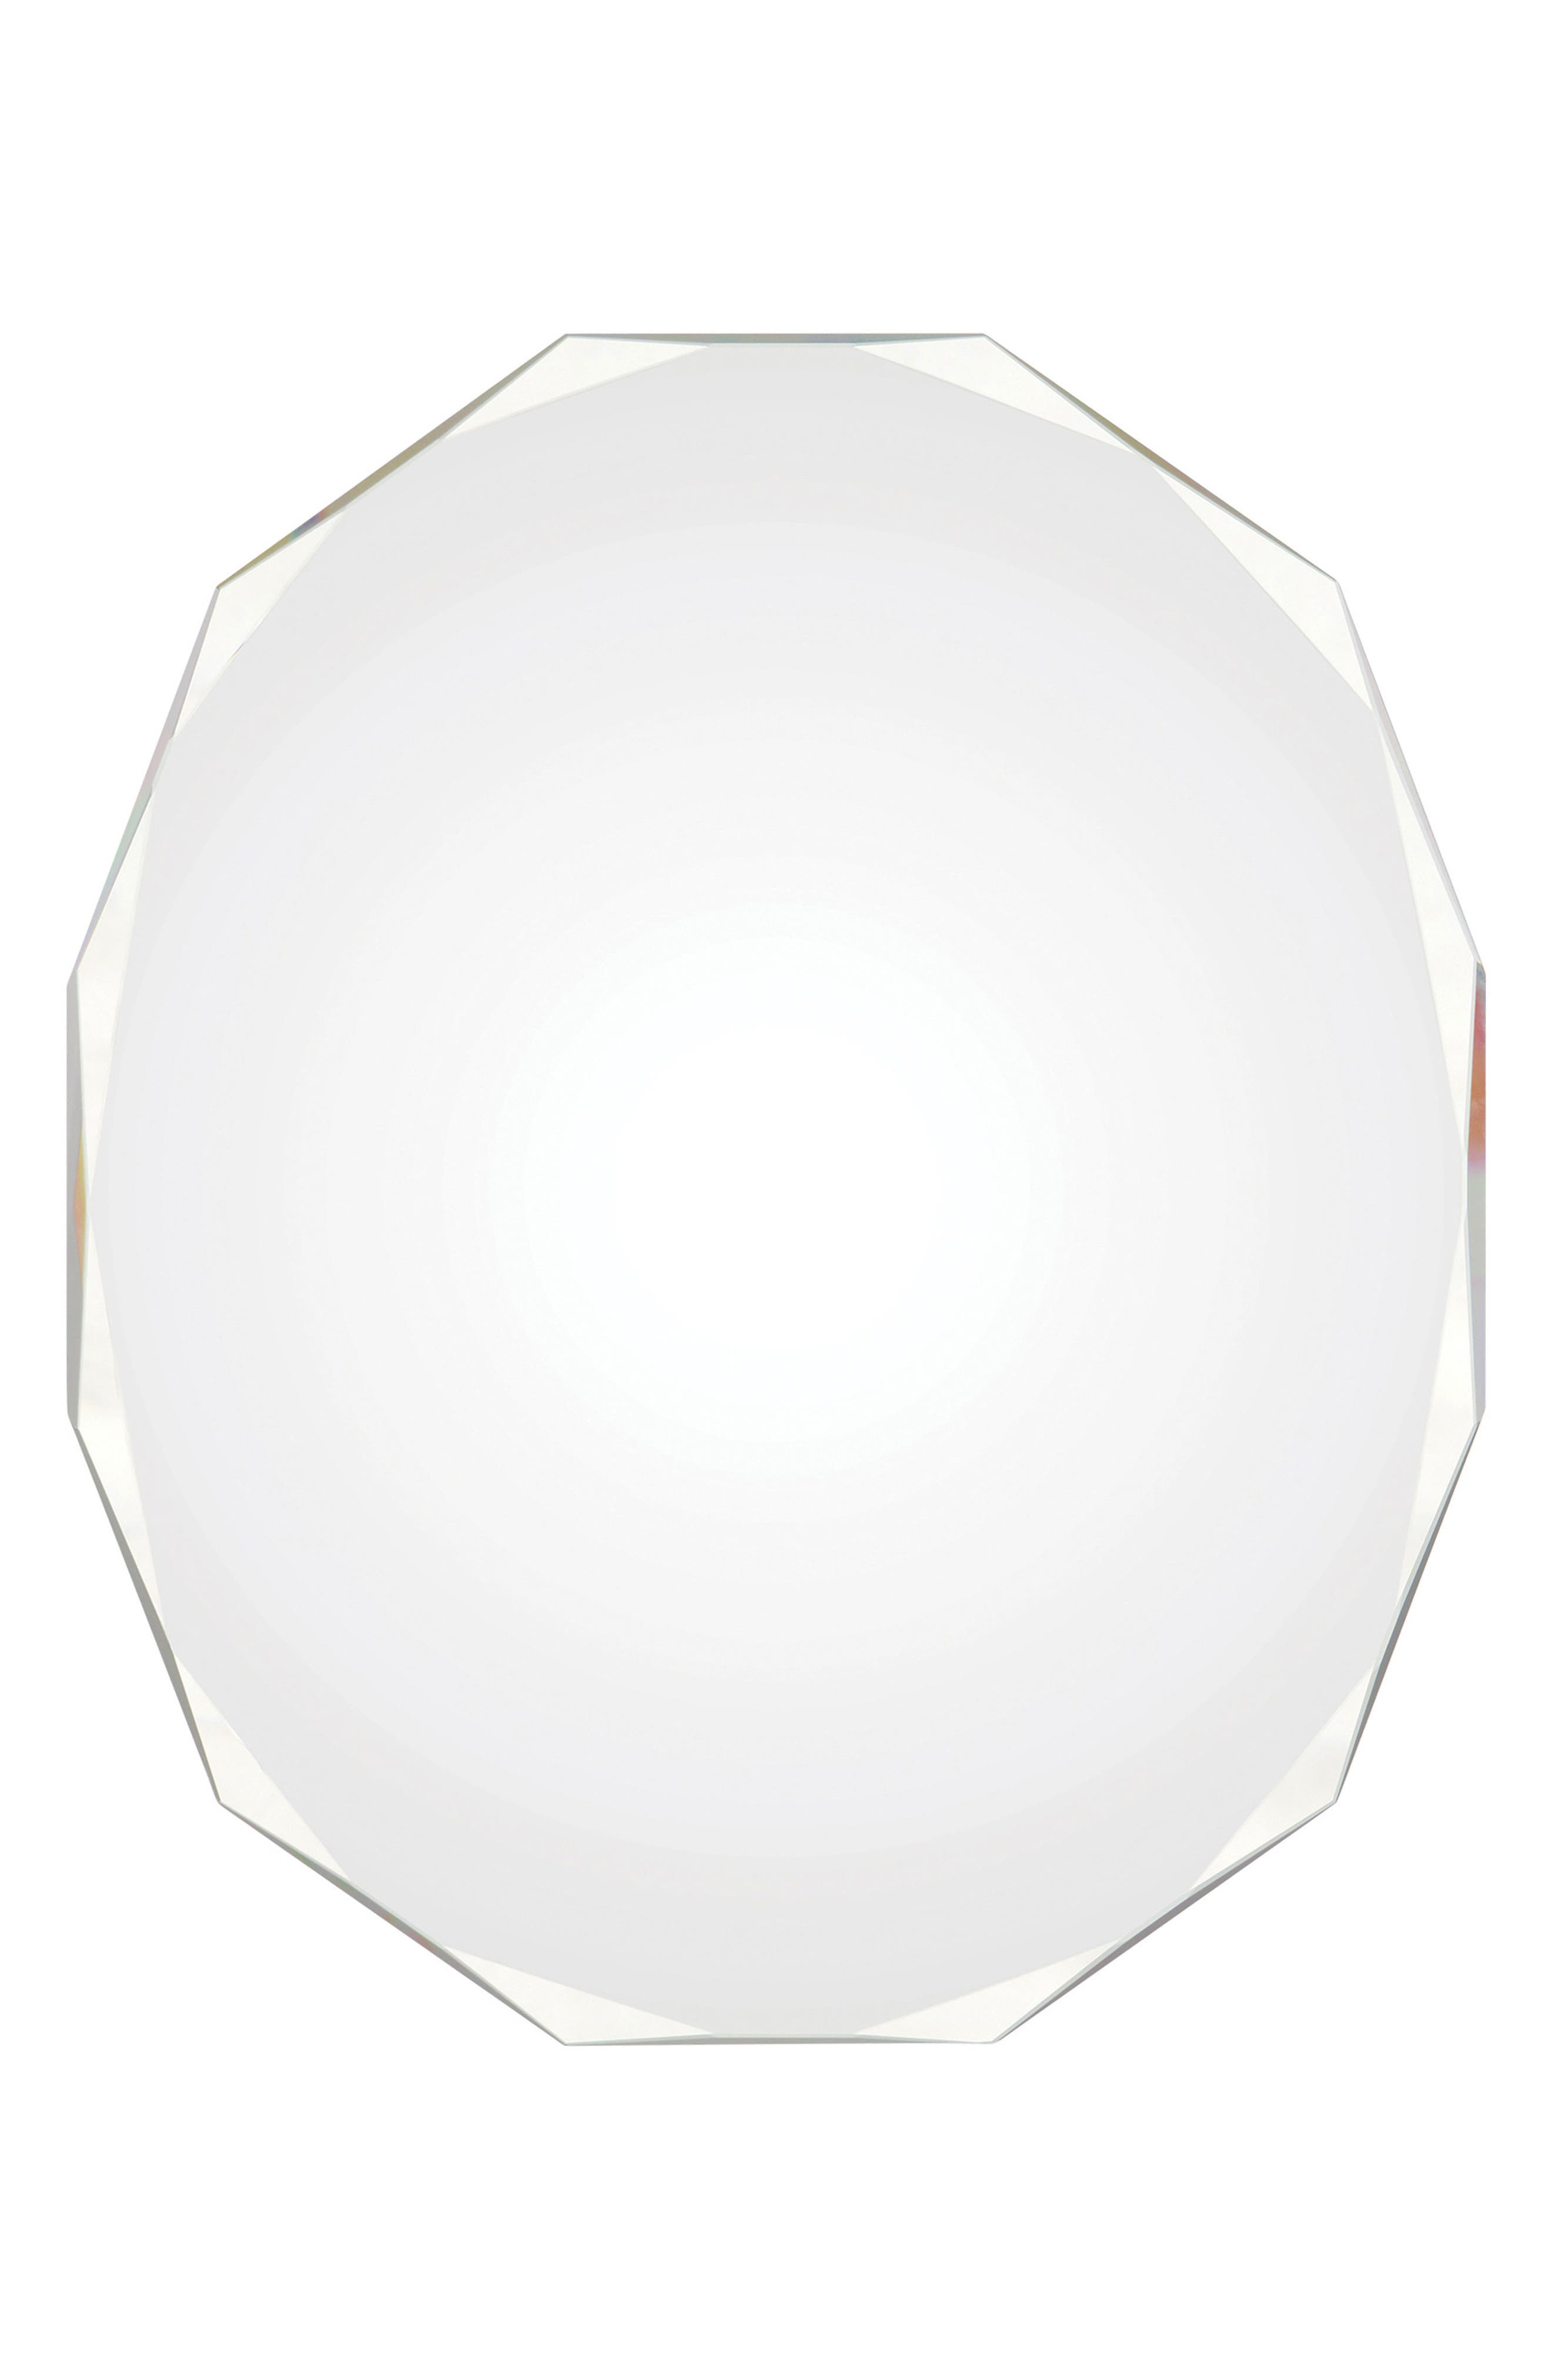 Astor Round Mirror,                             Main thumbnail 1, color,                             Clear